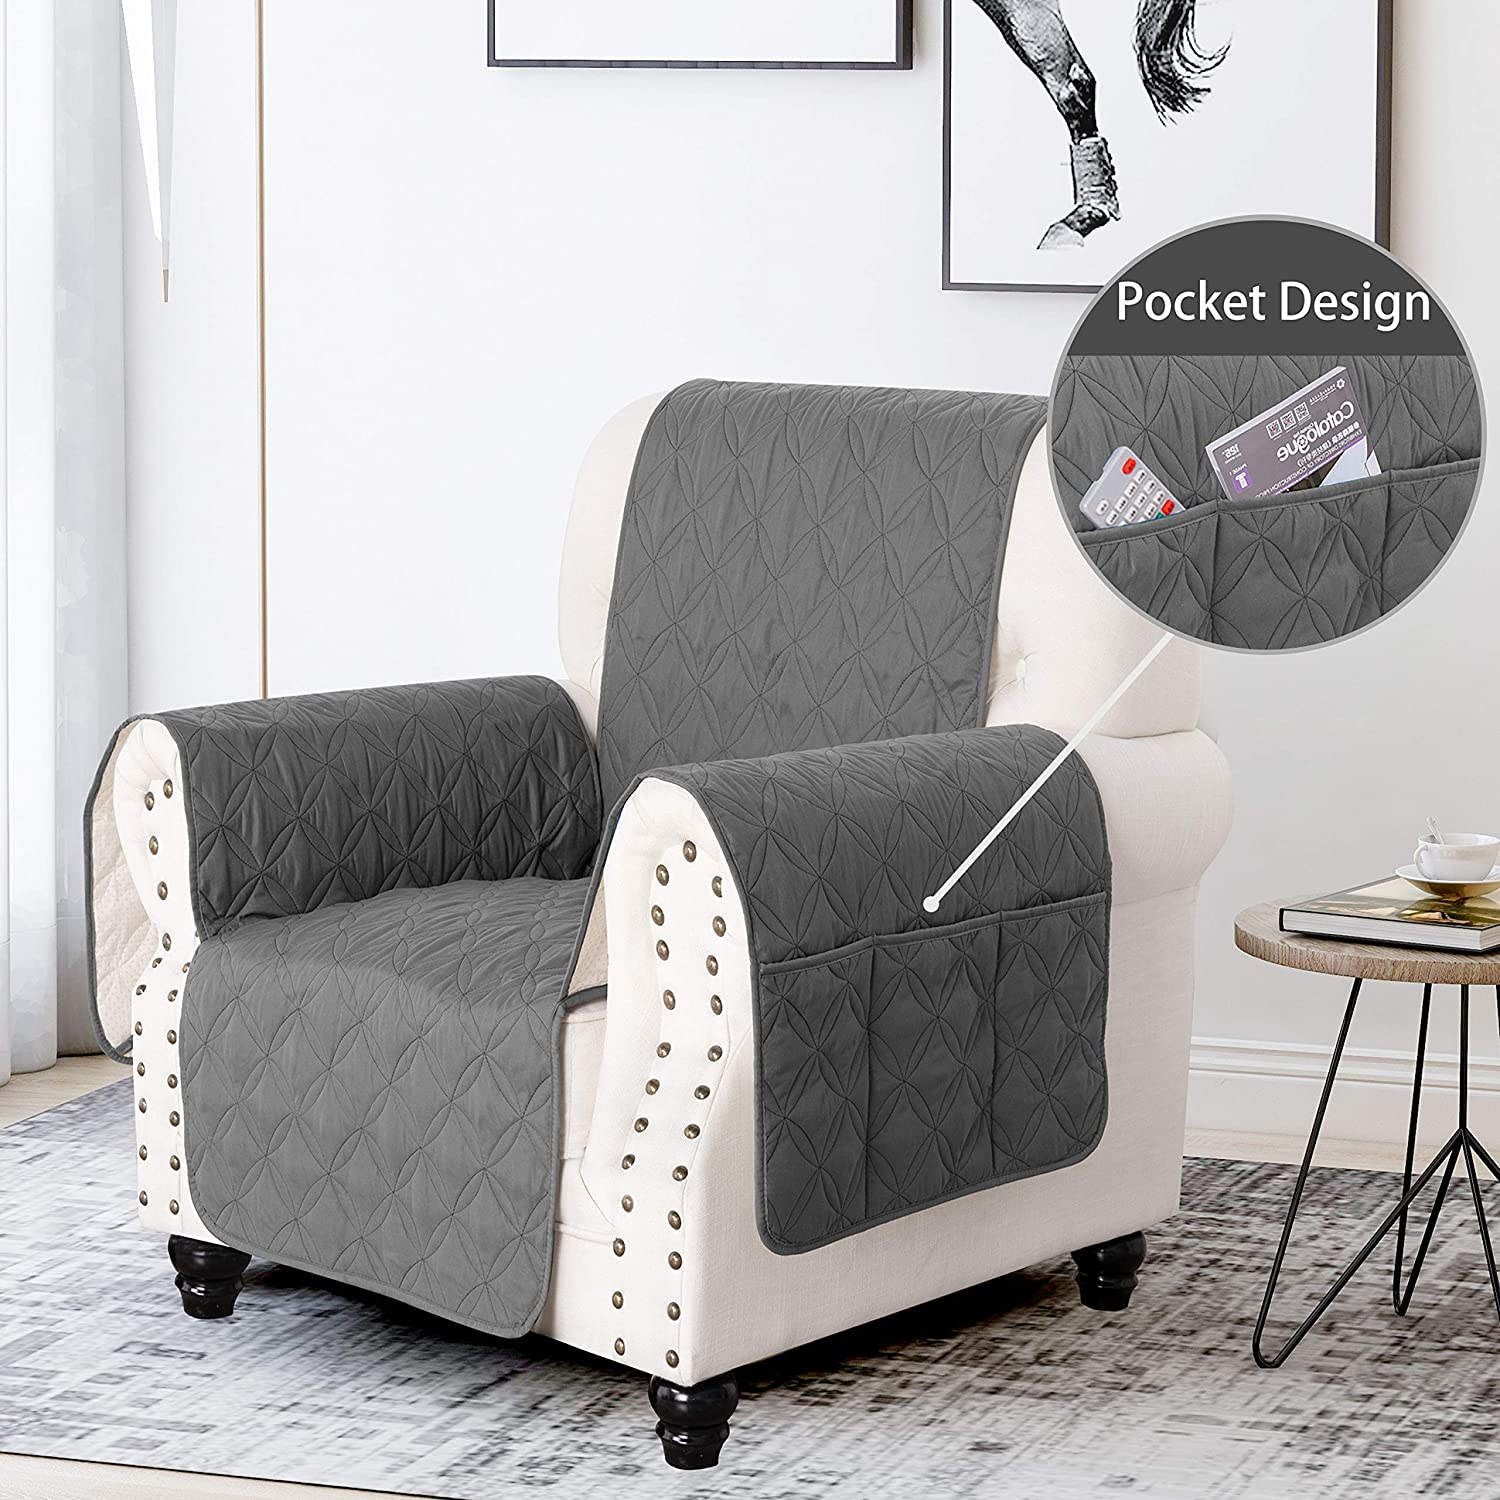 SOFTOWN Non-Slip Chair Sofa Slipcover 100% Waterproof Sofa Cover Furniture Protector Couch Covers with for Dog, Pets: Kitchen & Dining